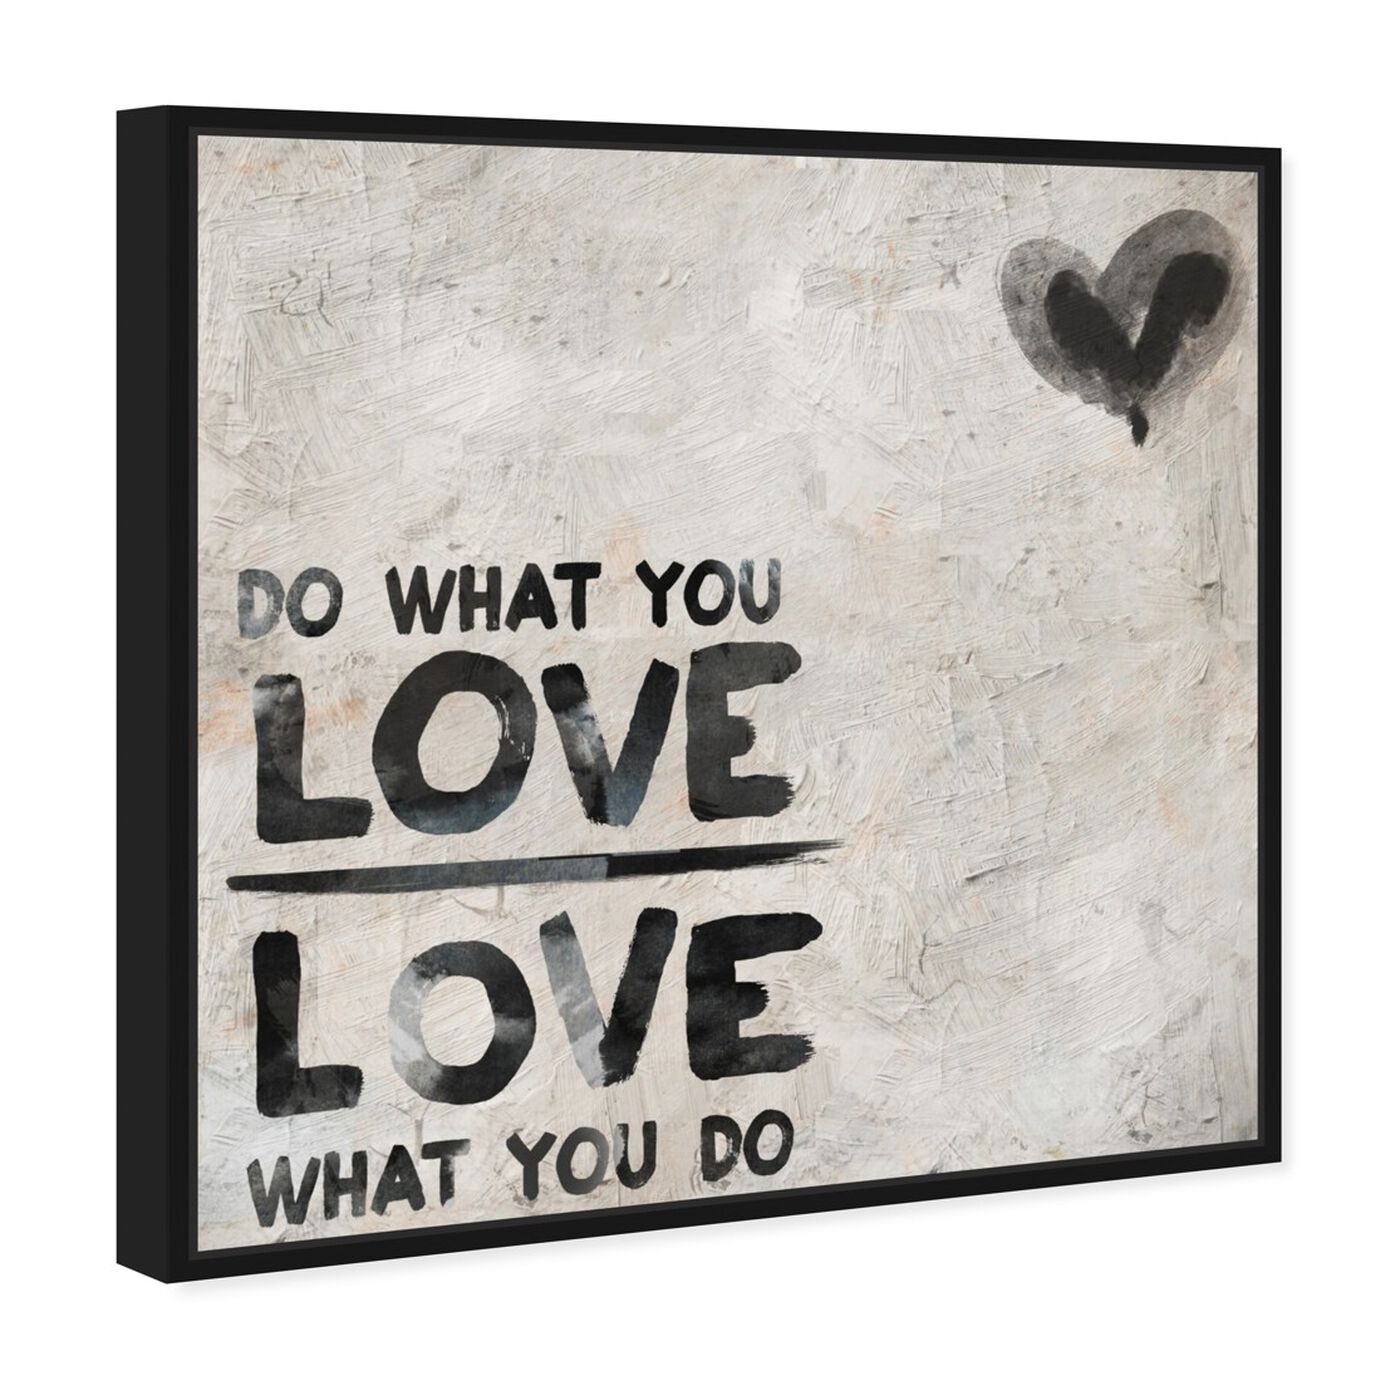 Angled view of Do What You Love featuring typography and quotes and love quotes and sayings art.